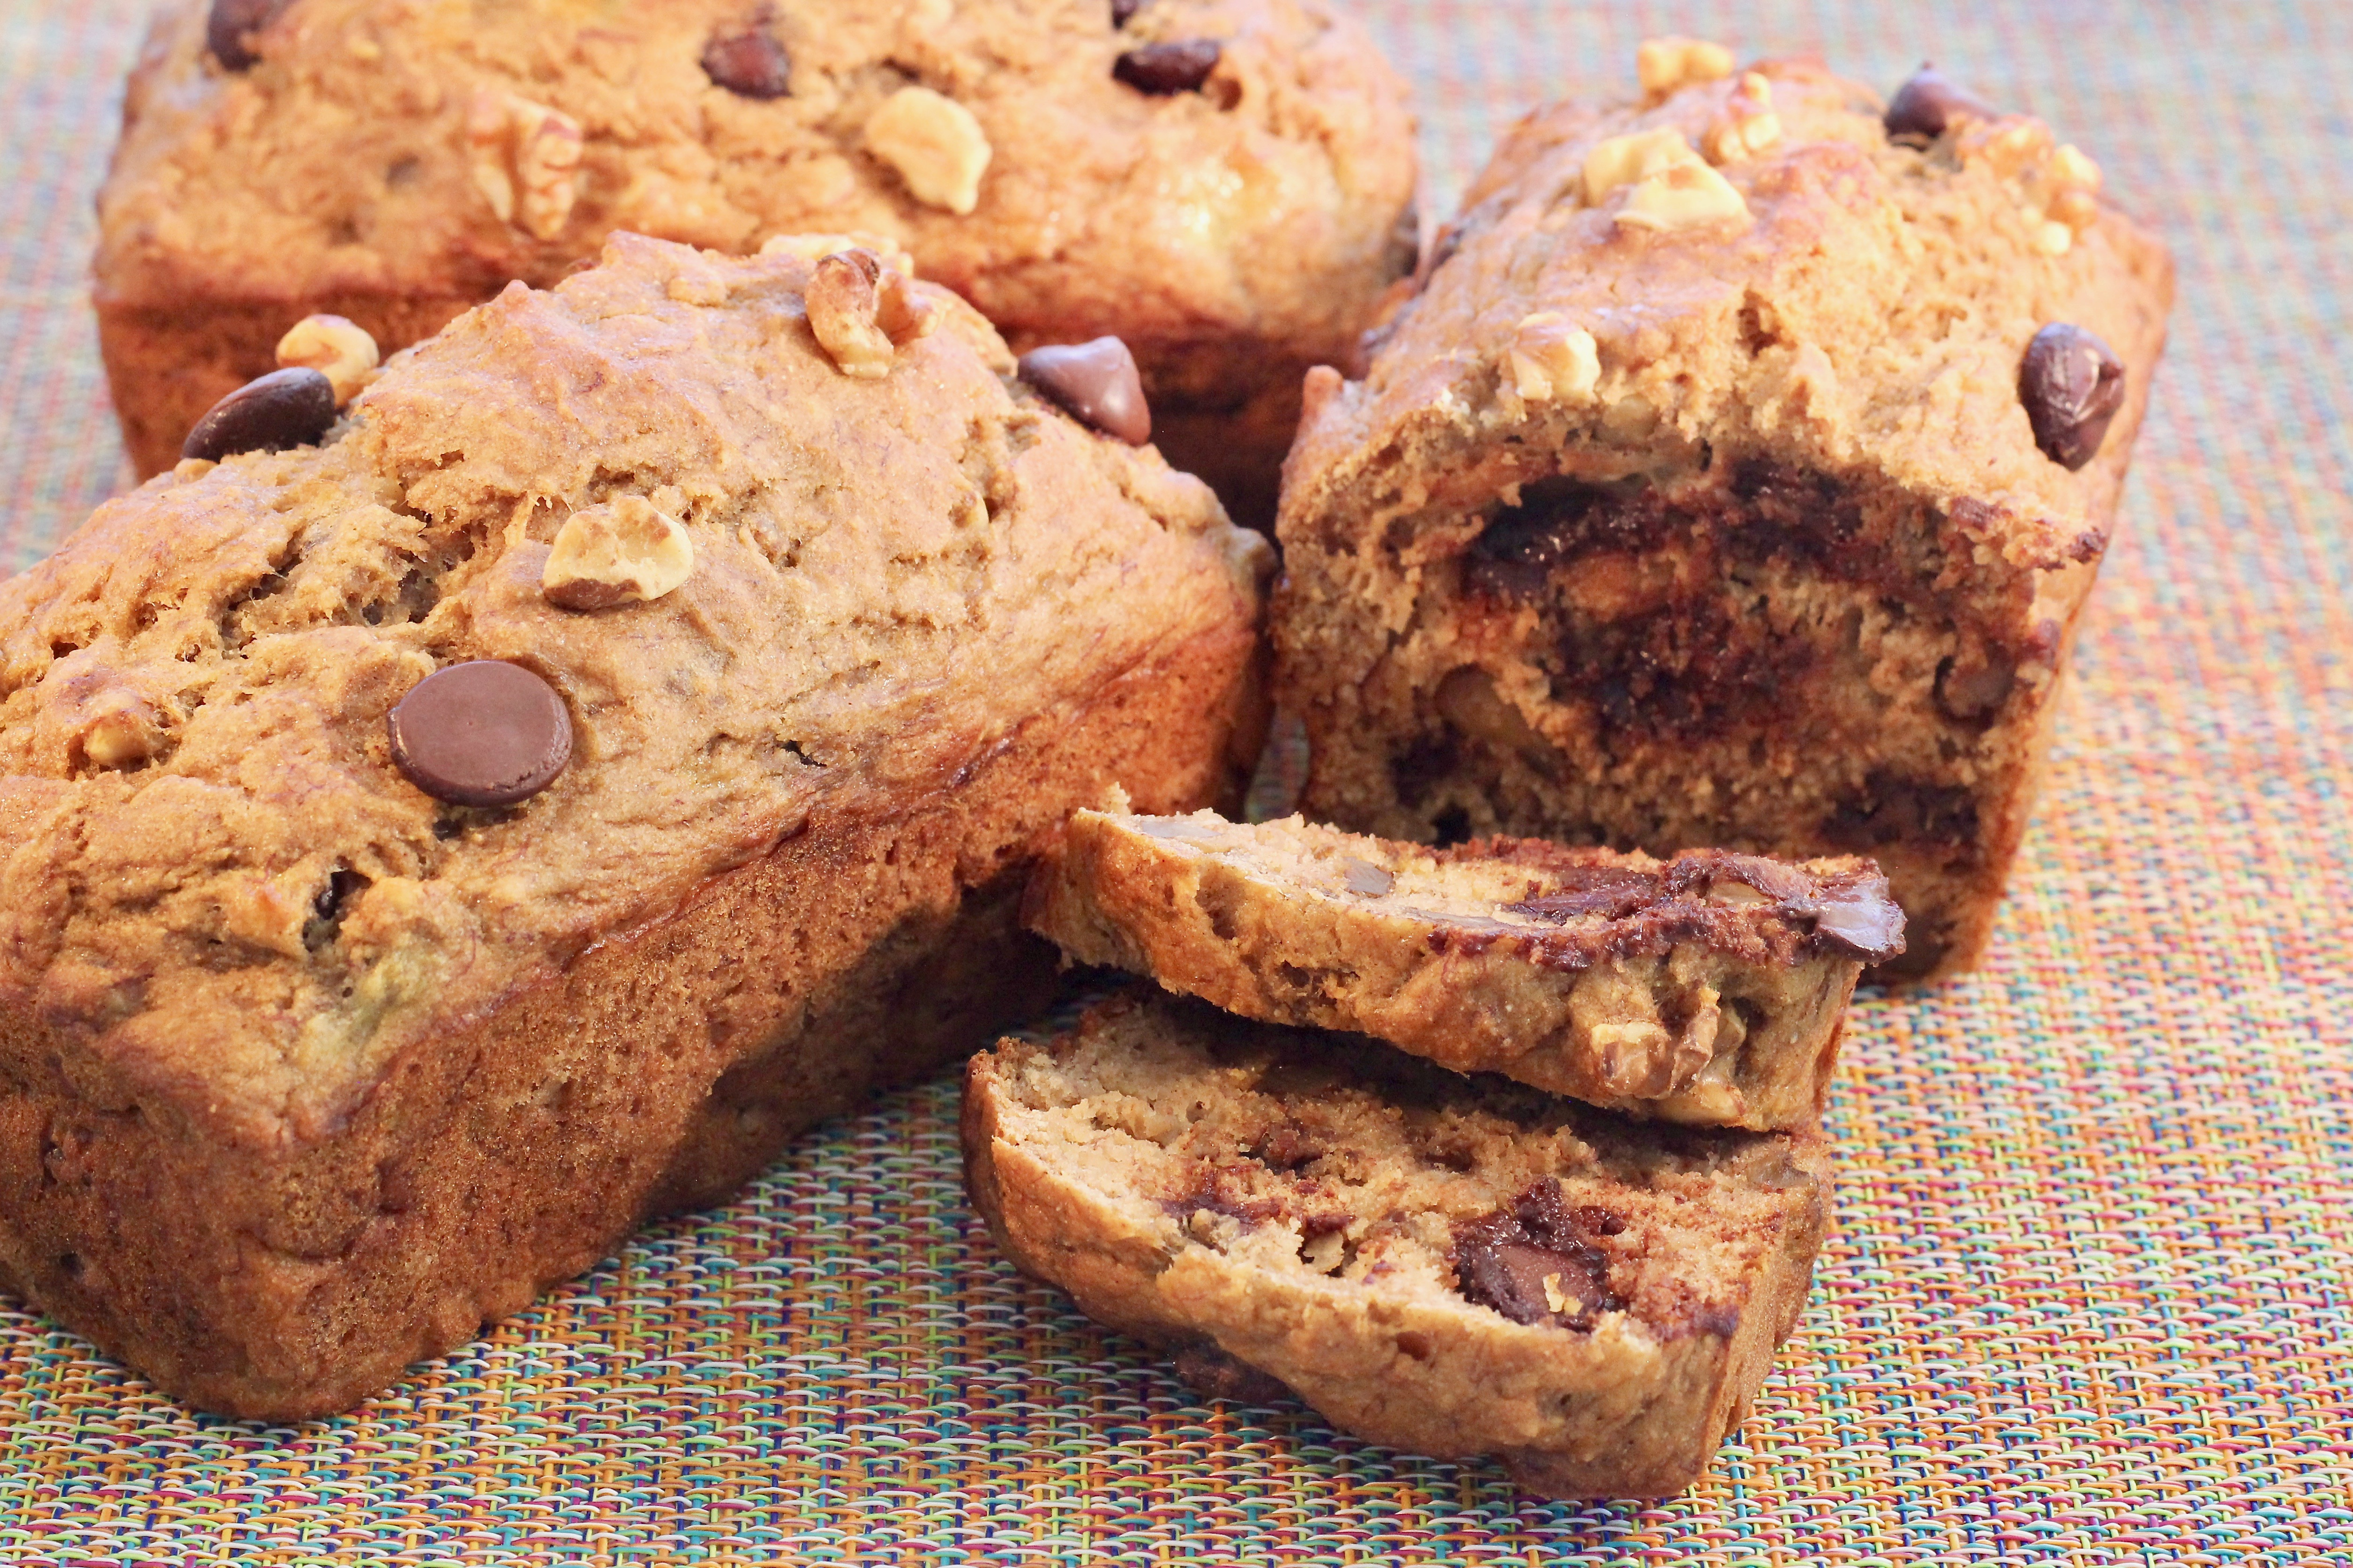 Emily's Banana-Nut Mini Loaves with Chocolate Chips